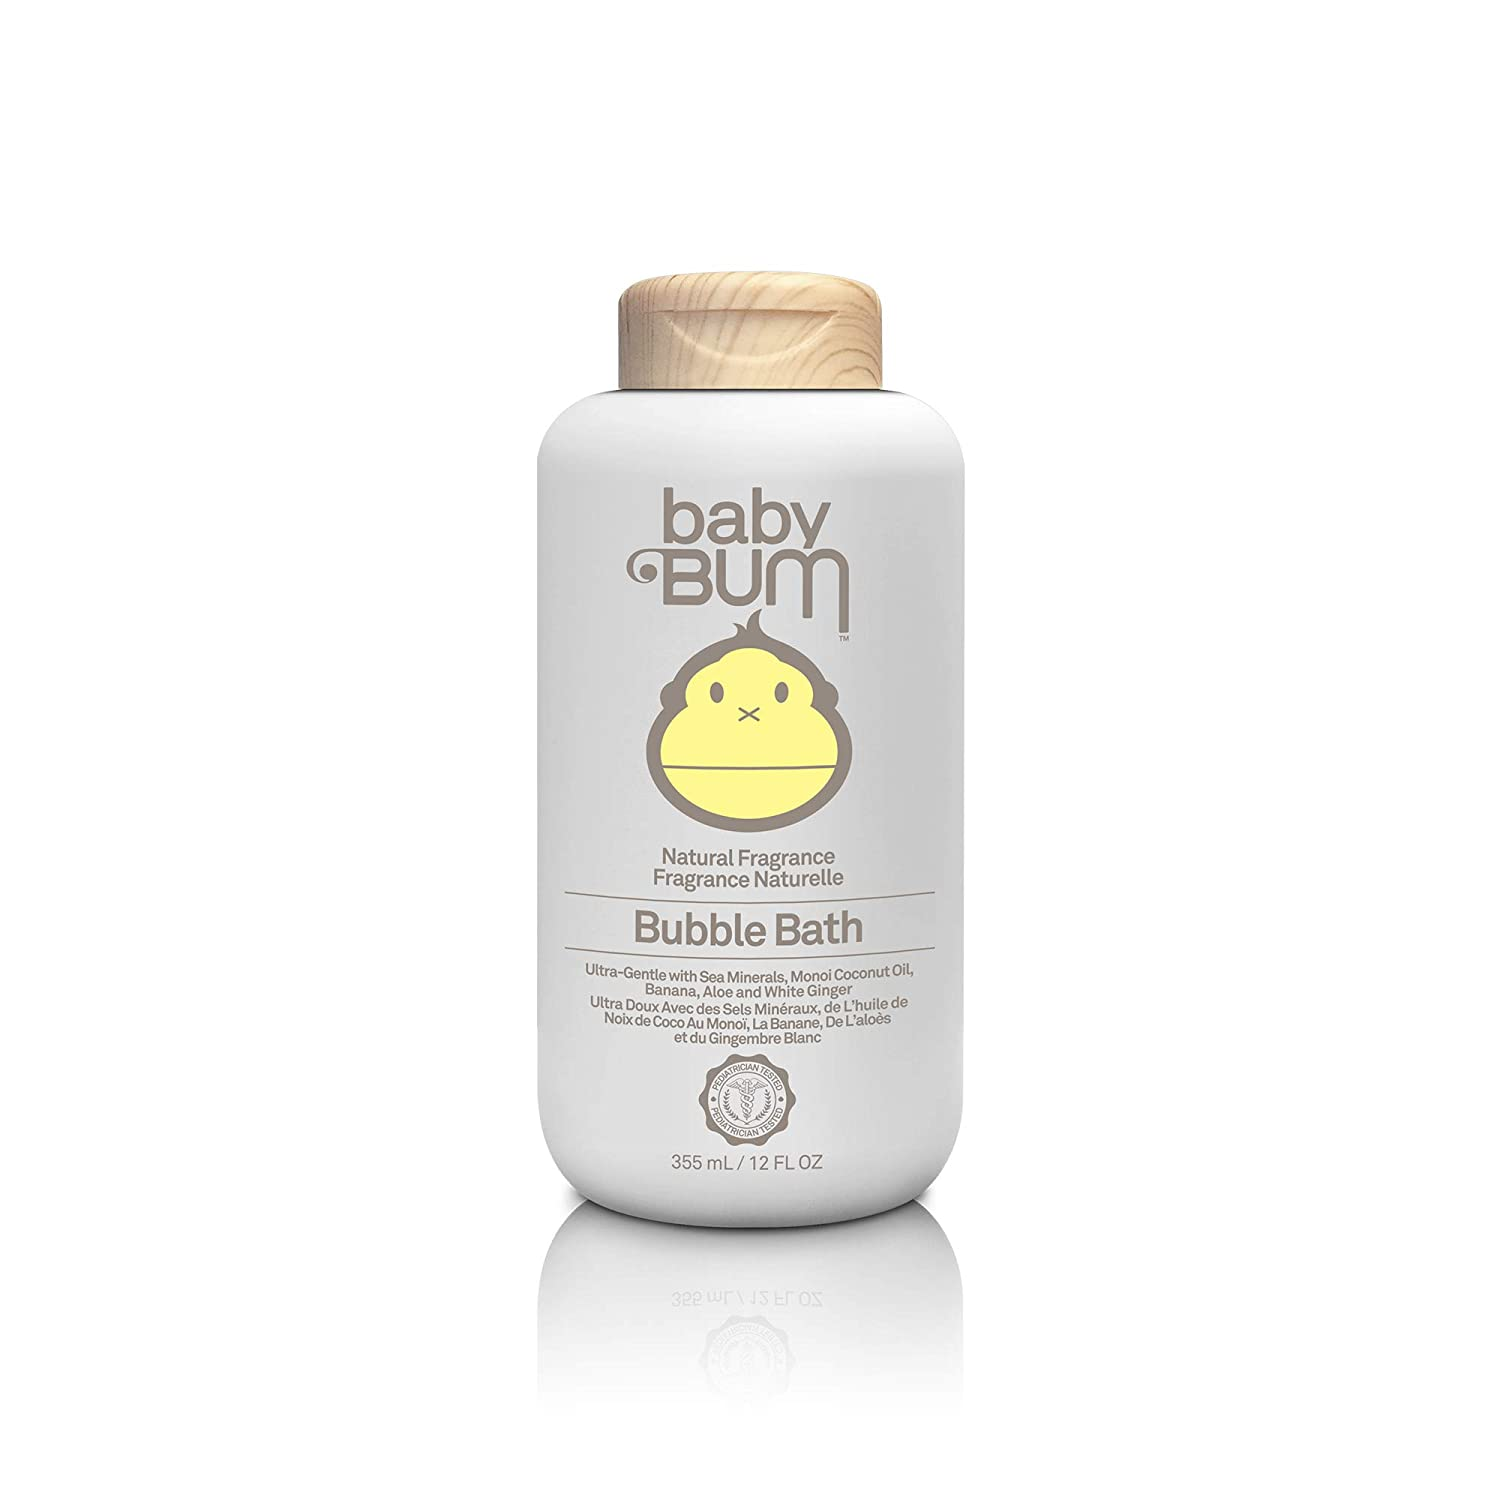 Sun Bum Baby Bum Bubble Bath Natural Fragrance, 355 mL, 1 Count, Hydrating, Hypoallergenic, Artificial Fragrance Free, Tear Free, Vegan, Dermatologist Tested, Pediatrician Tested